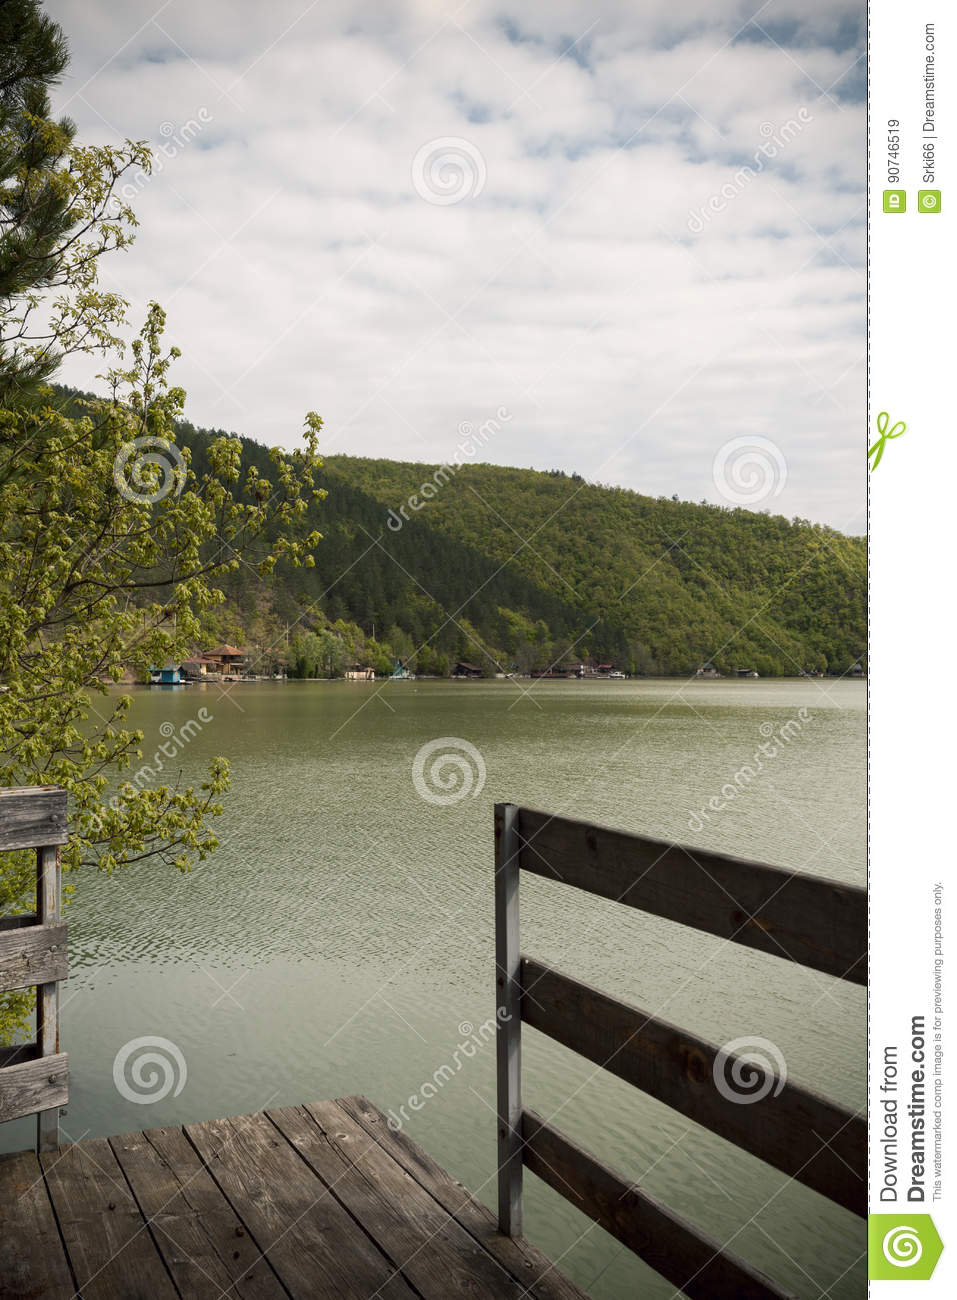 Terace by the lake